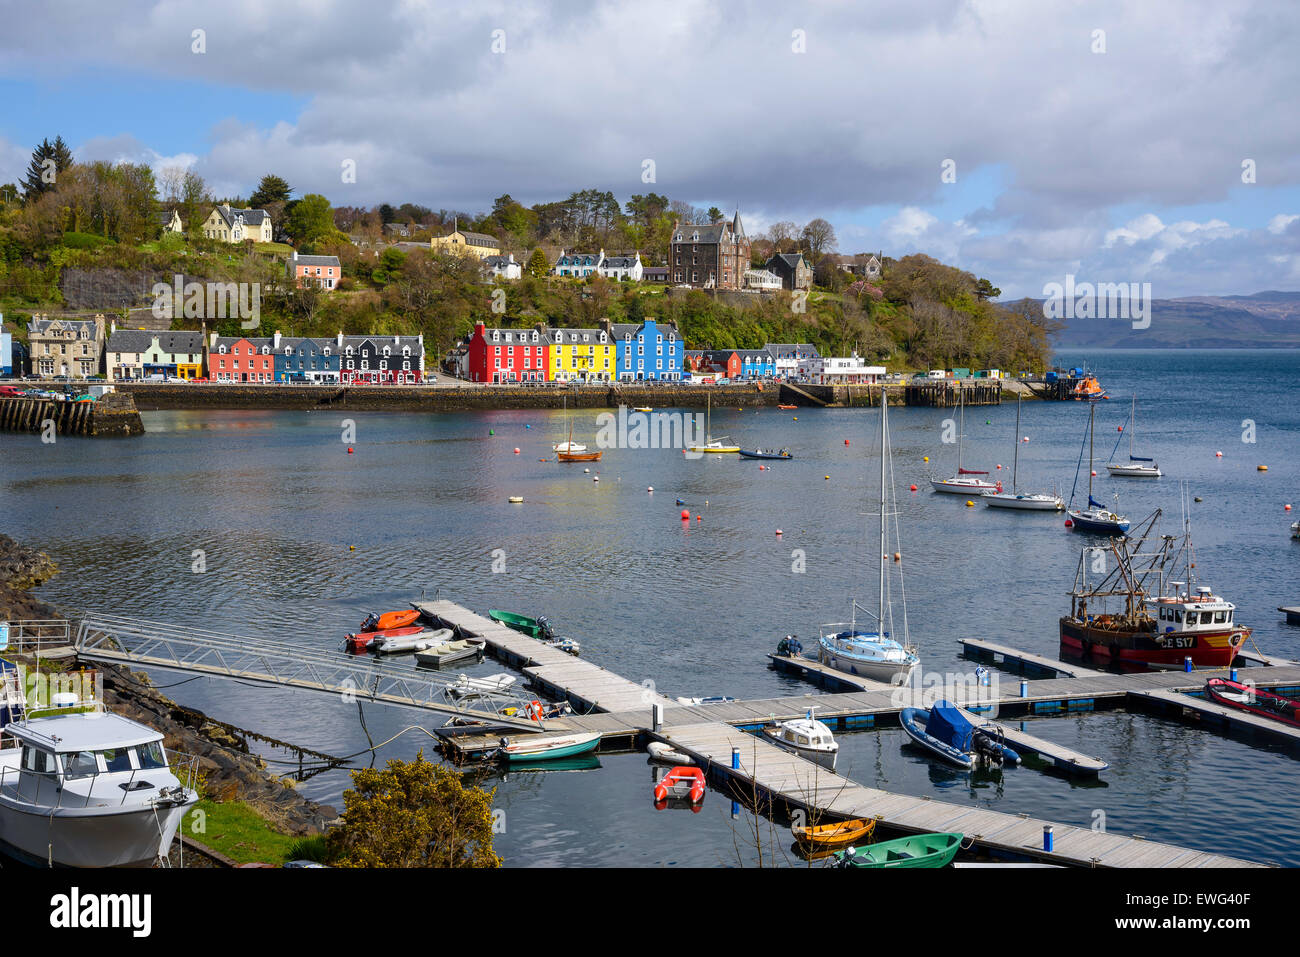 Tobermory harbour, Isle of Mull, Hebrides, Argyll and Bute, Scotland - Stock Image